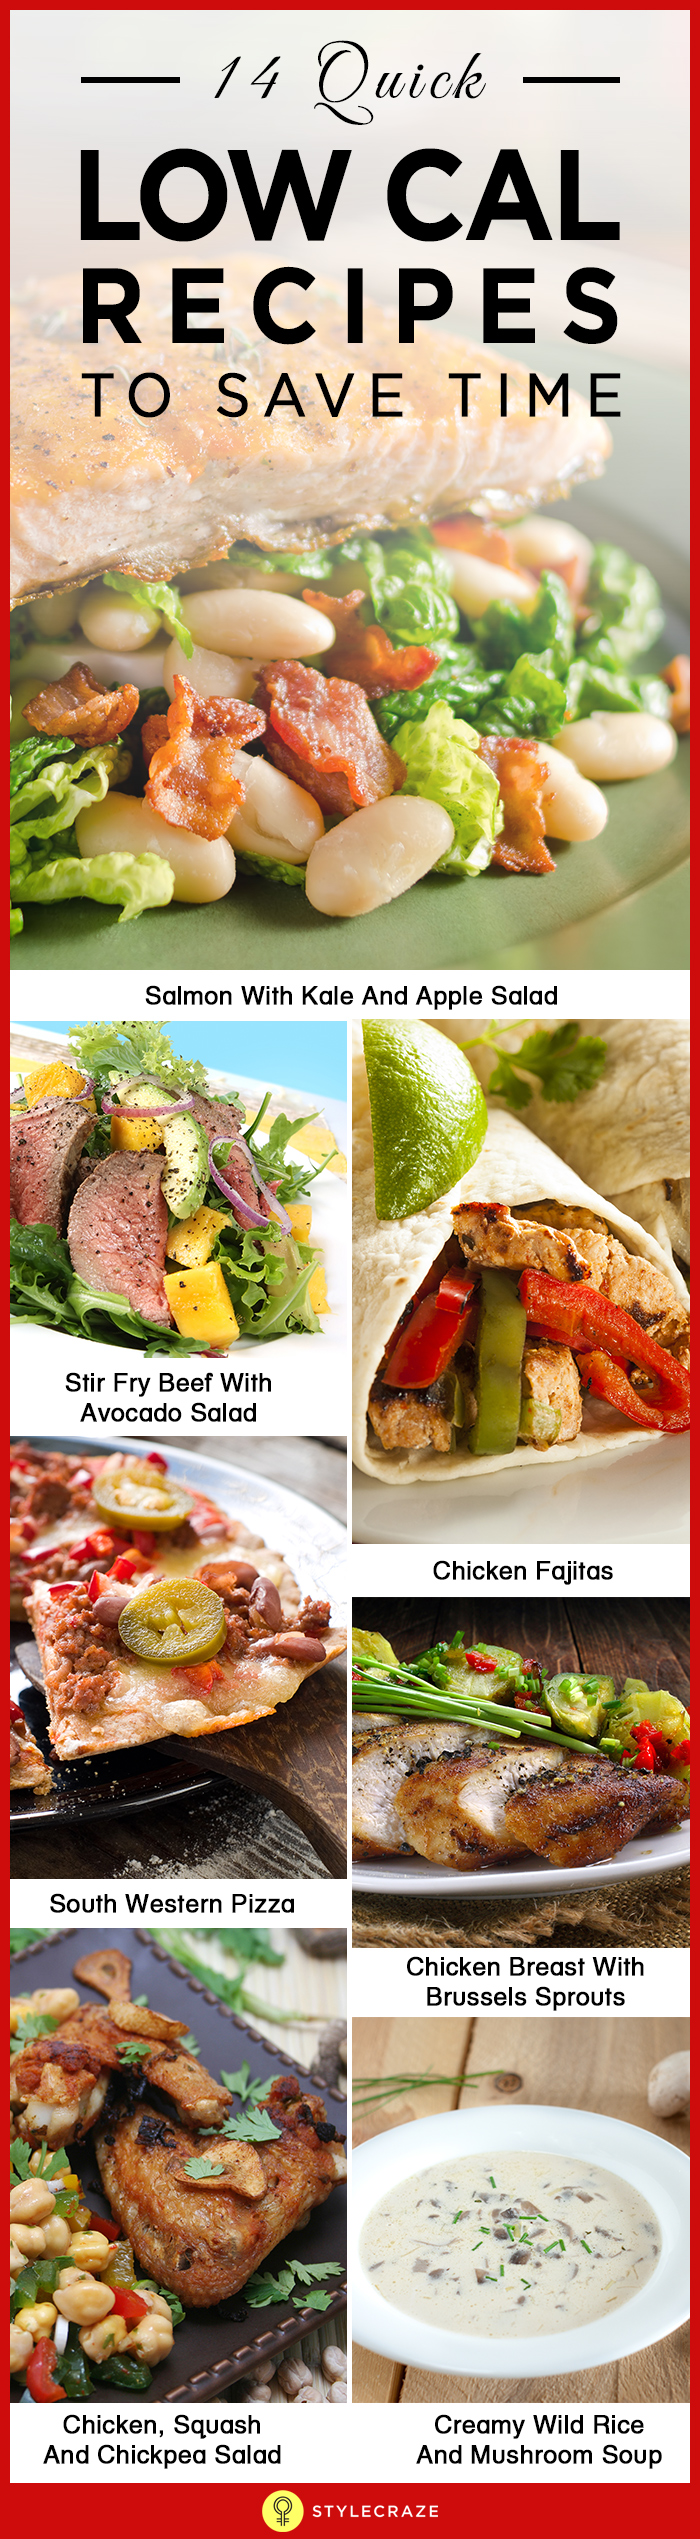 14-Quick-And-Healthy-Low-Calorie-Dinner-Recipes